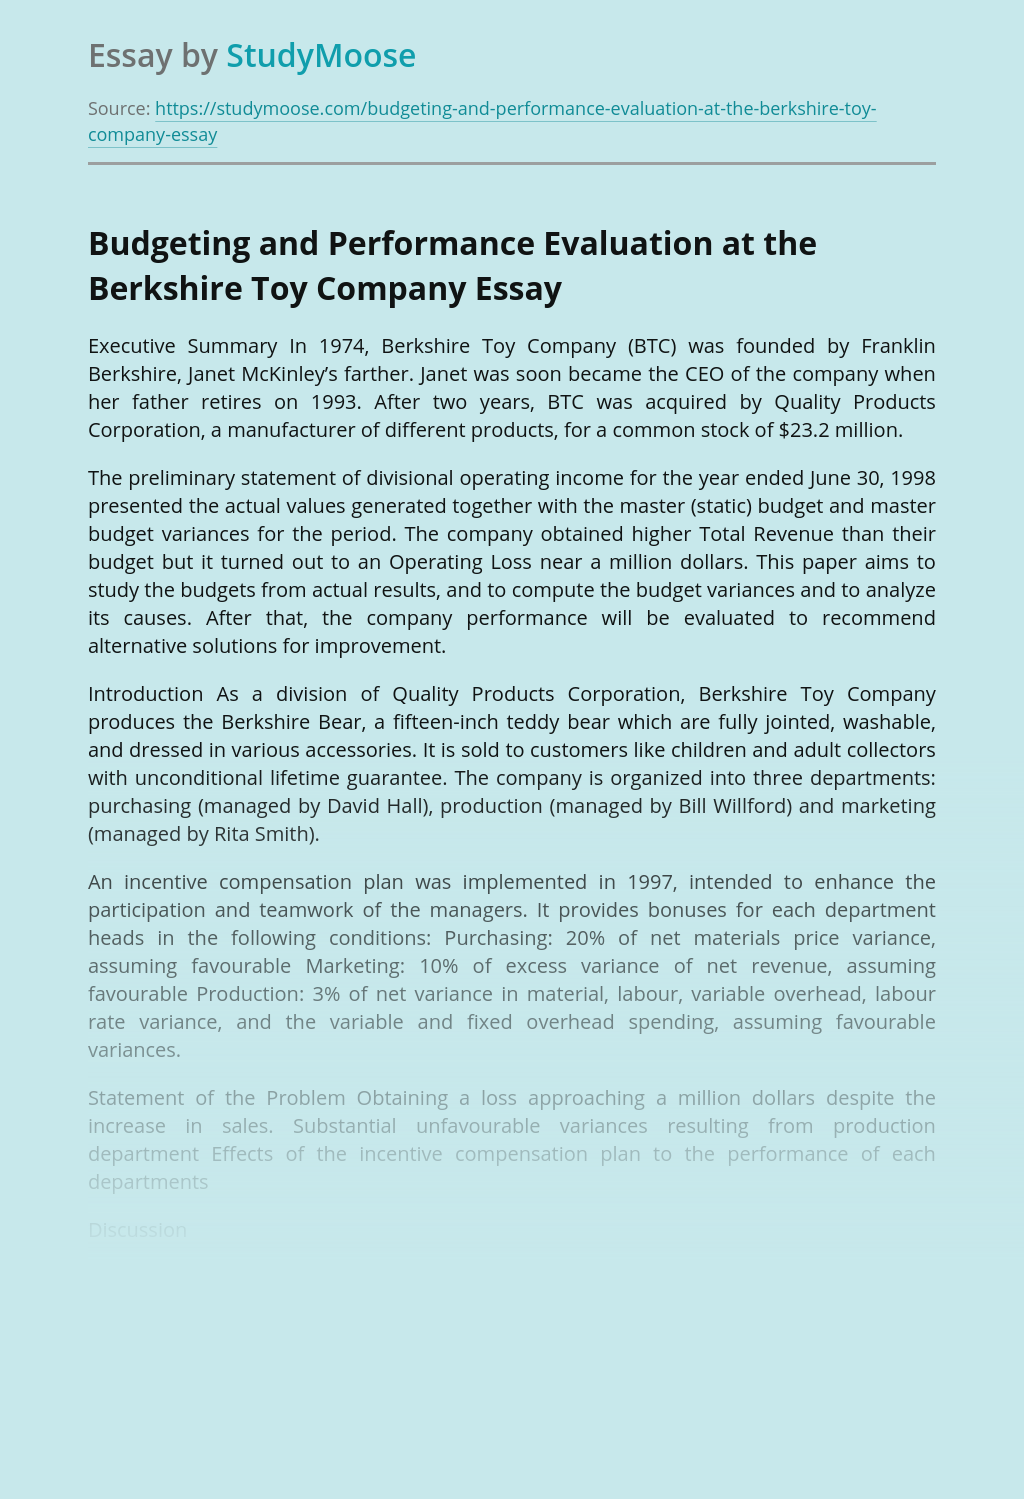 Budgeting and Performance Evaluation at the Berkshire Toy Company